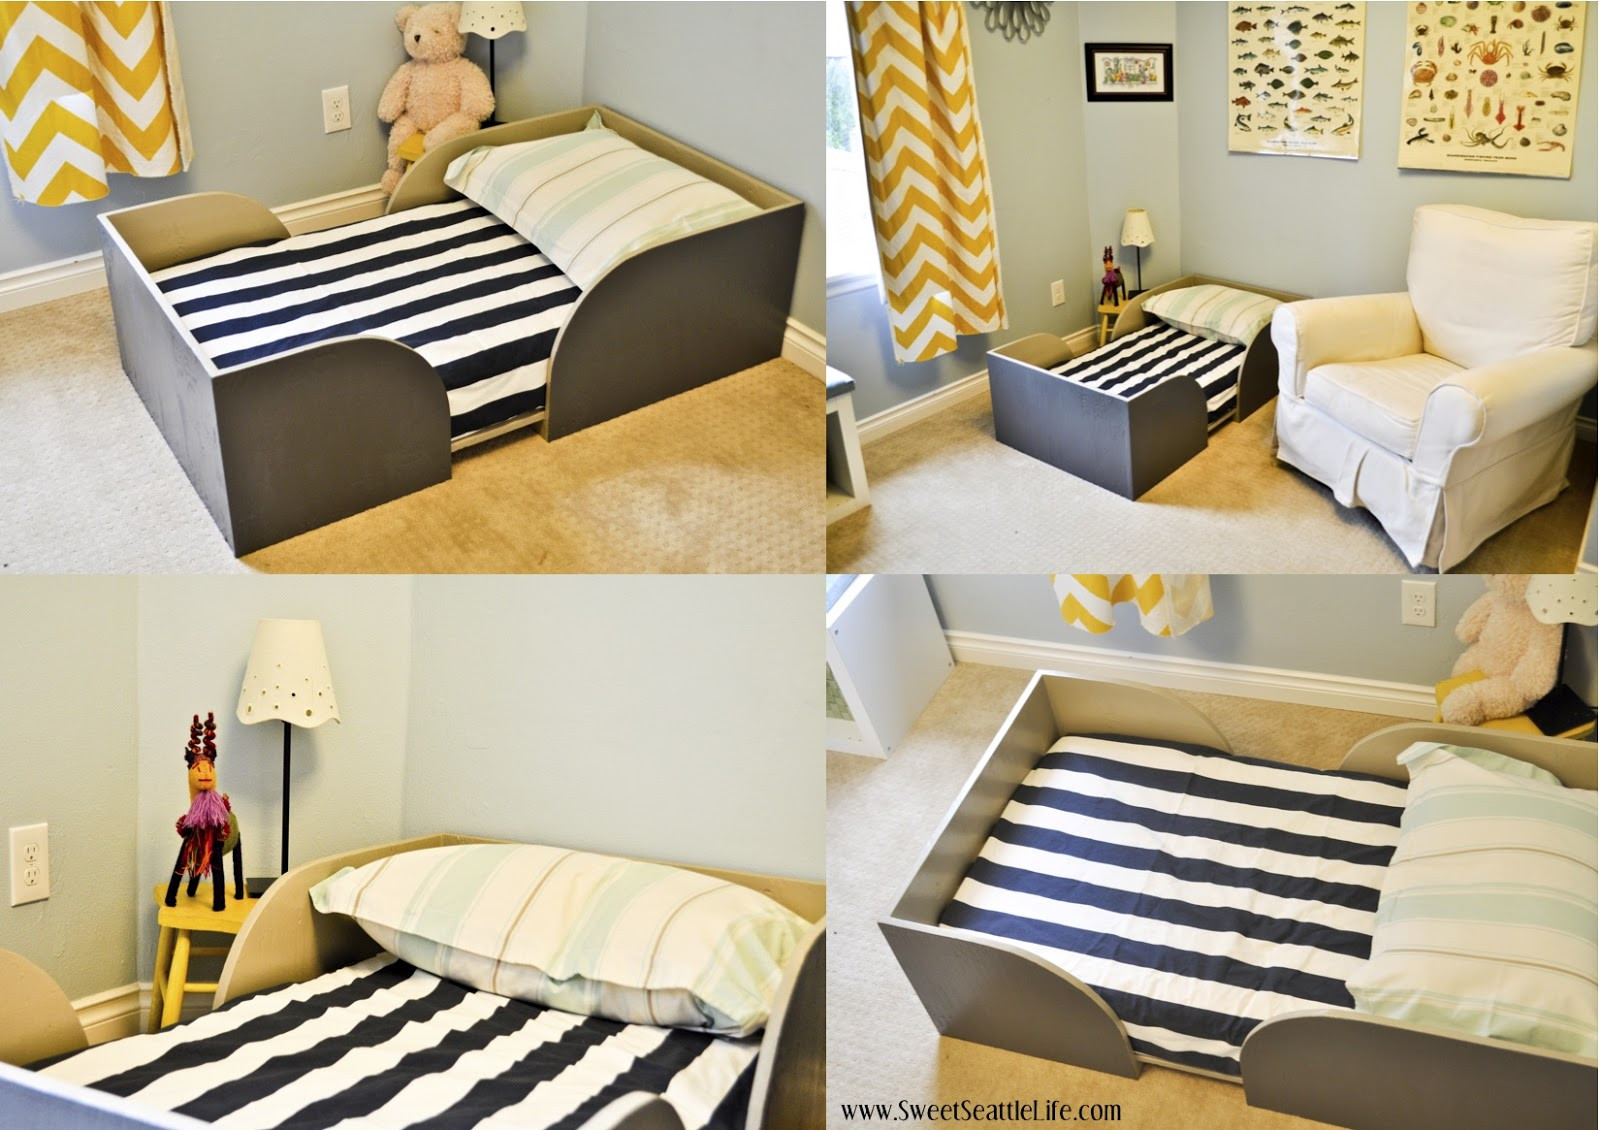 Best ideas about Kids Bed DIY . Save or Pin Chris and Sonja The Sweet Seattle Life DIY Toddler Bed Now.